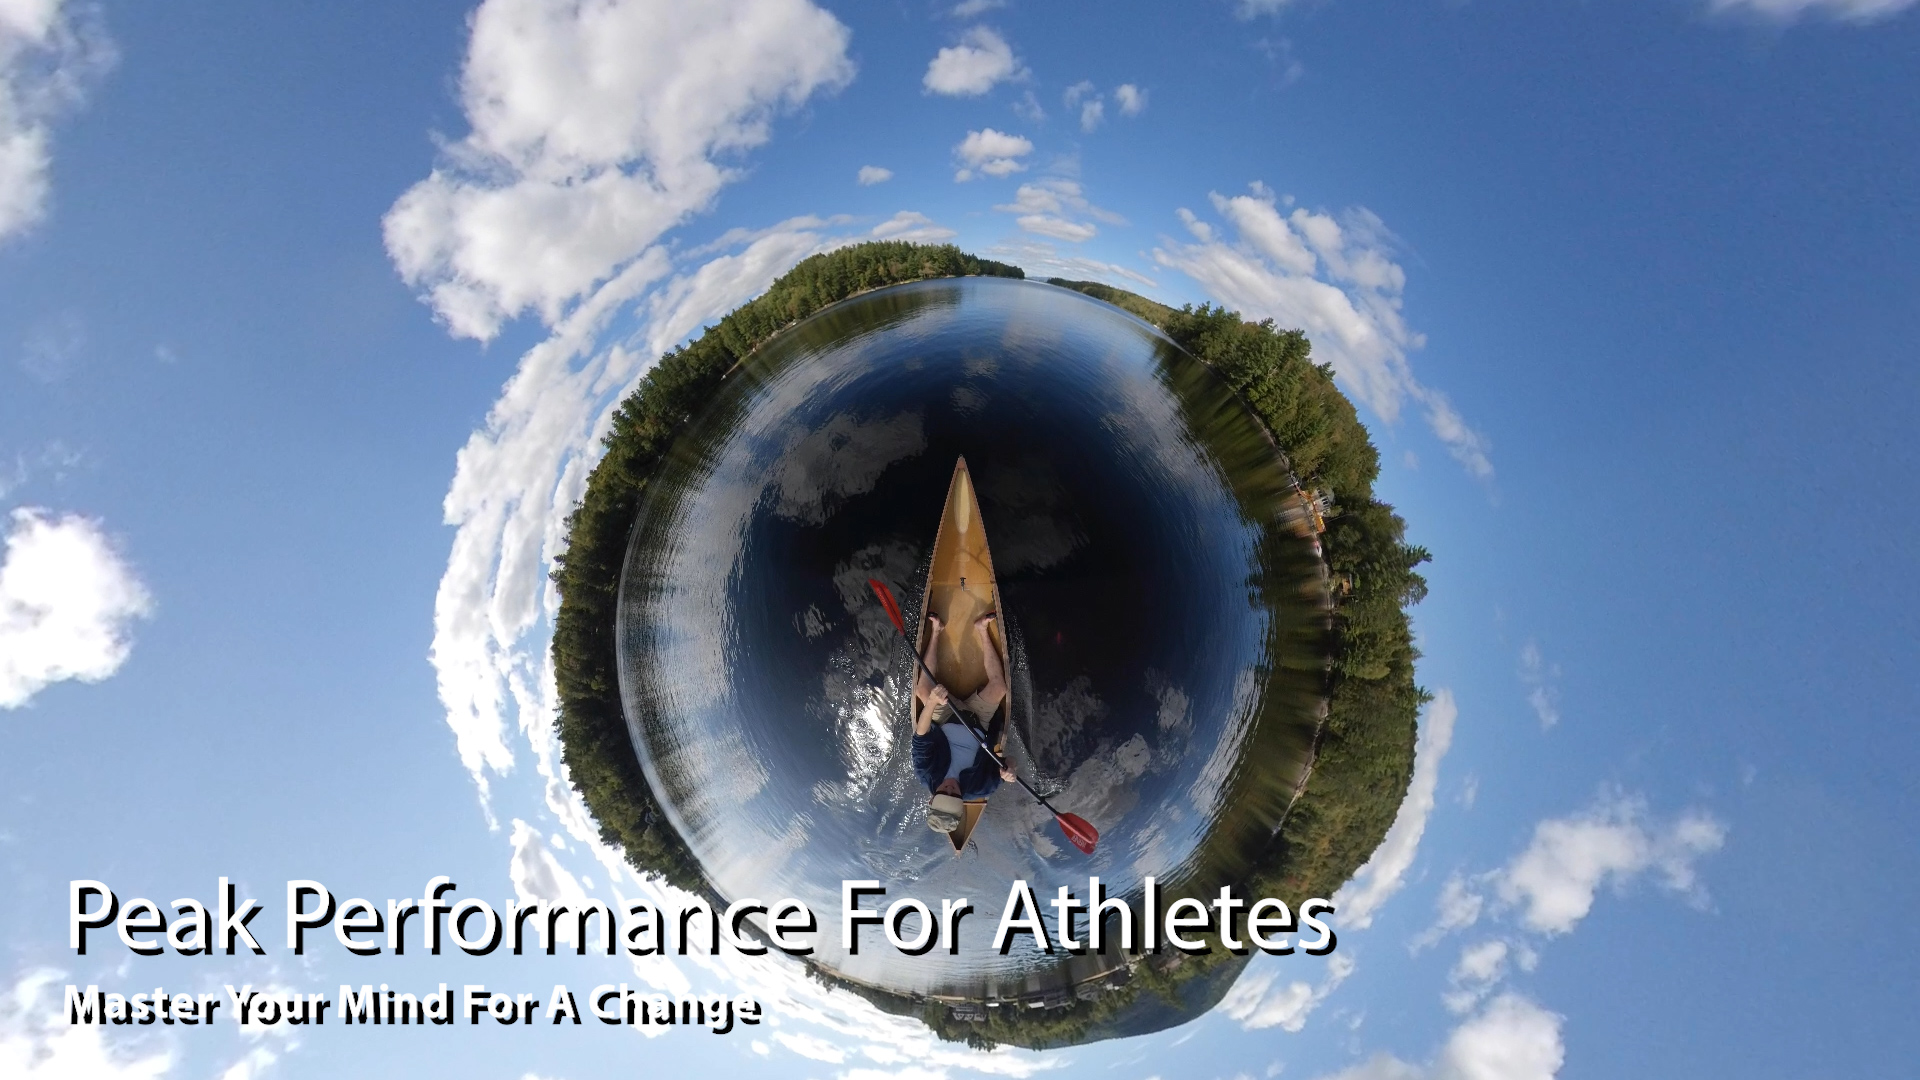 Help for Peak Performance For Athletes with Mental Blocks or Glitches